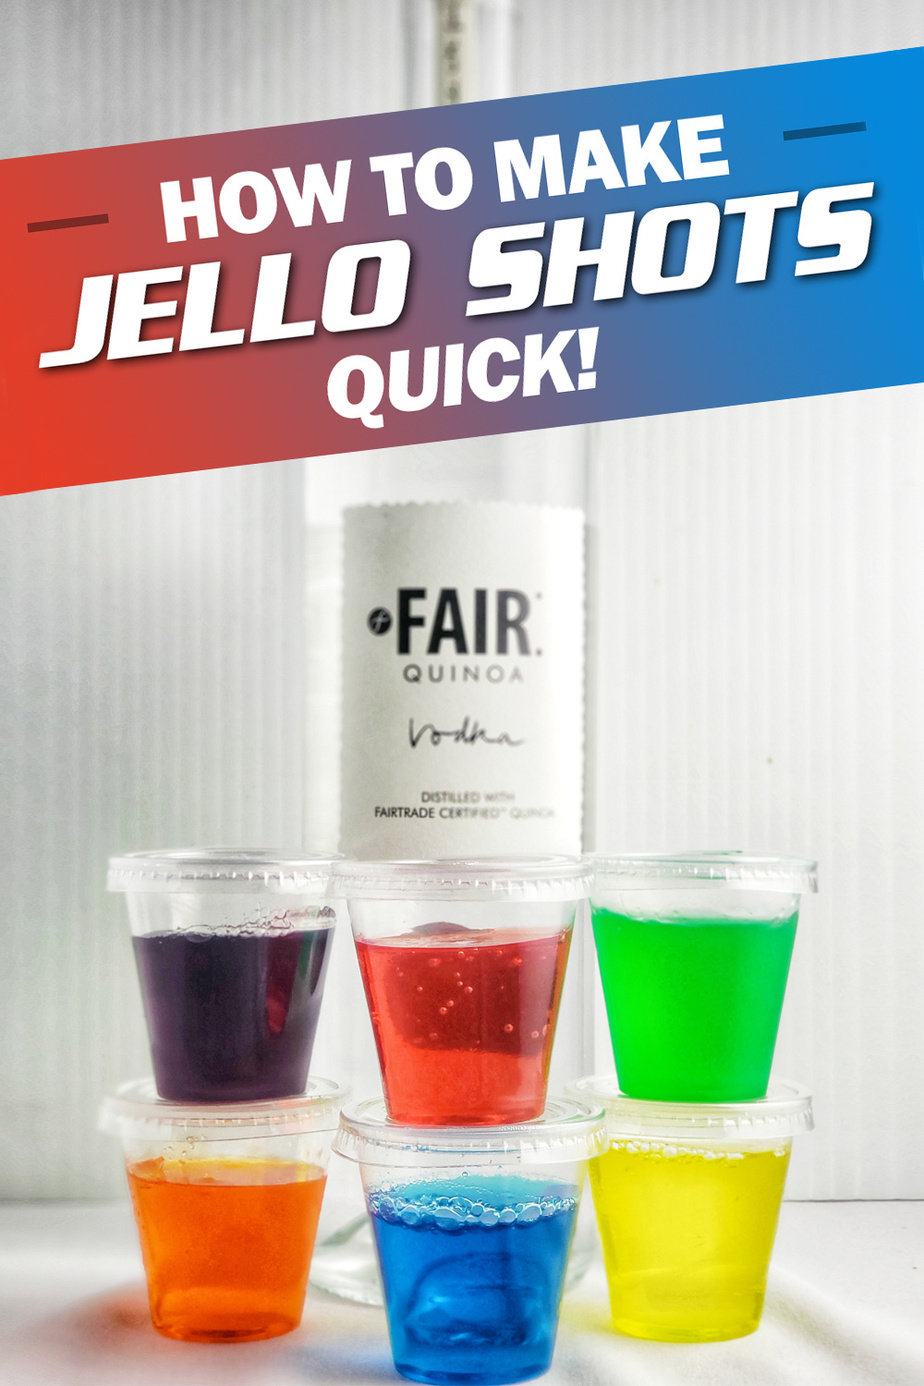 There are many flavors to choose from, and when you learn how to make Jello shots quick you can get the party started even faster! Jello Shot Recipes | Jello Shots Ideas | Party Recipes | Happy Hour Recipes | Party Planning | Holiday Parties #jelloshots